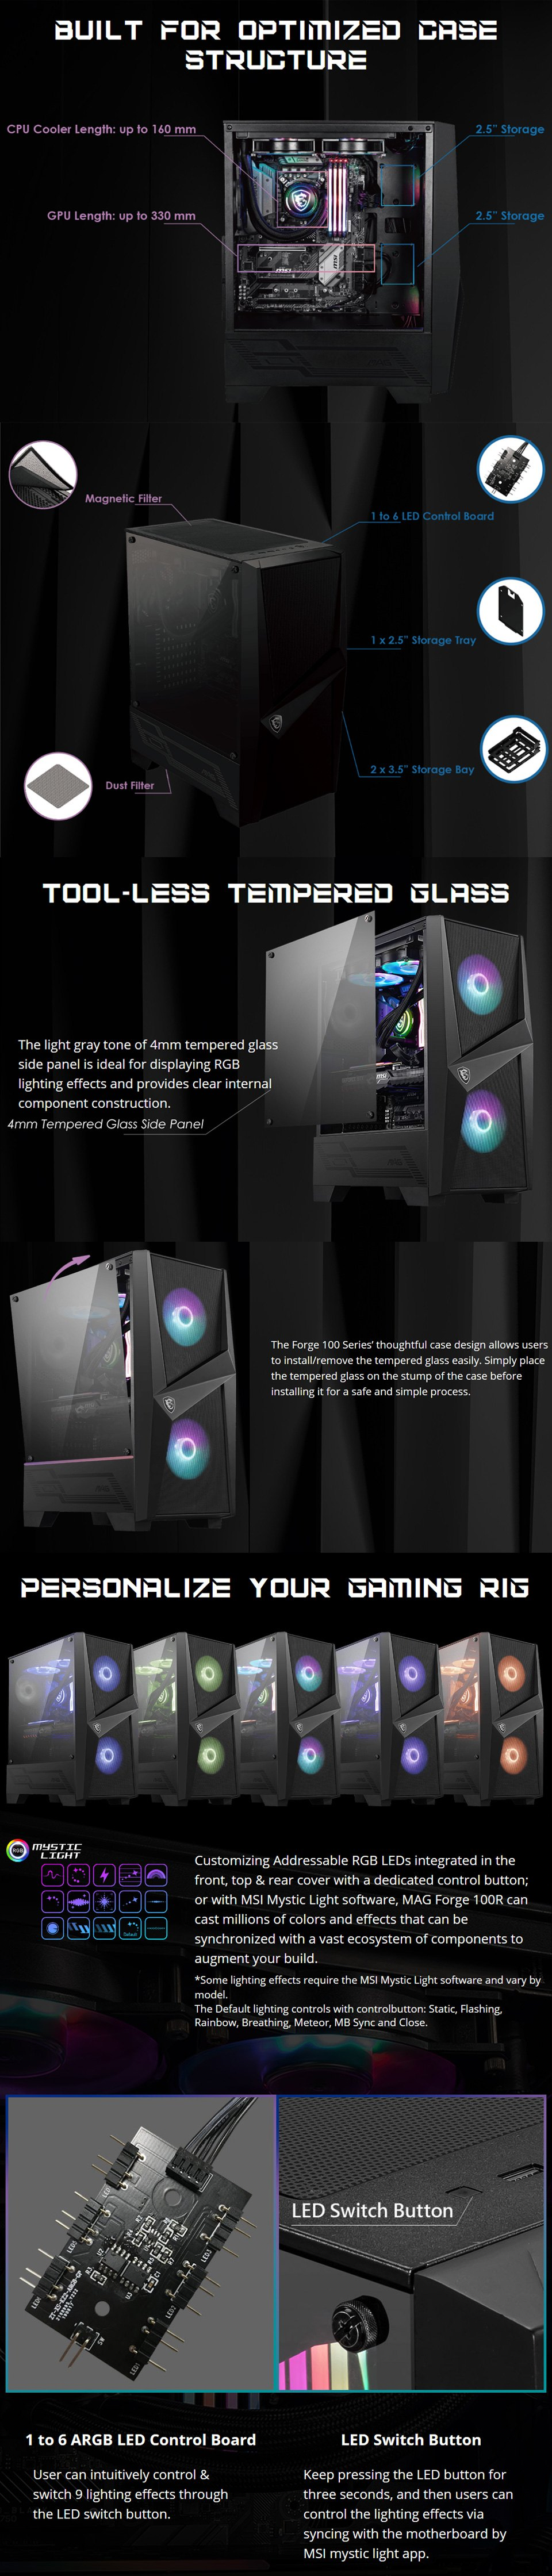 MSI Forge 100R RGB Tempered Glass Case features 2